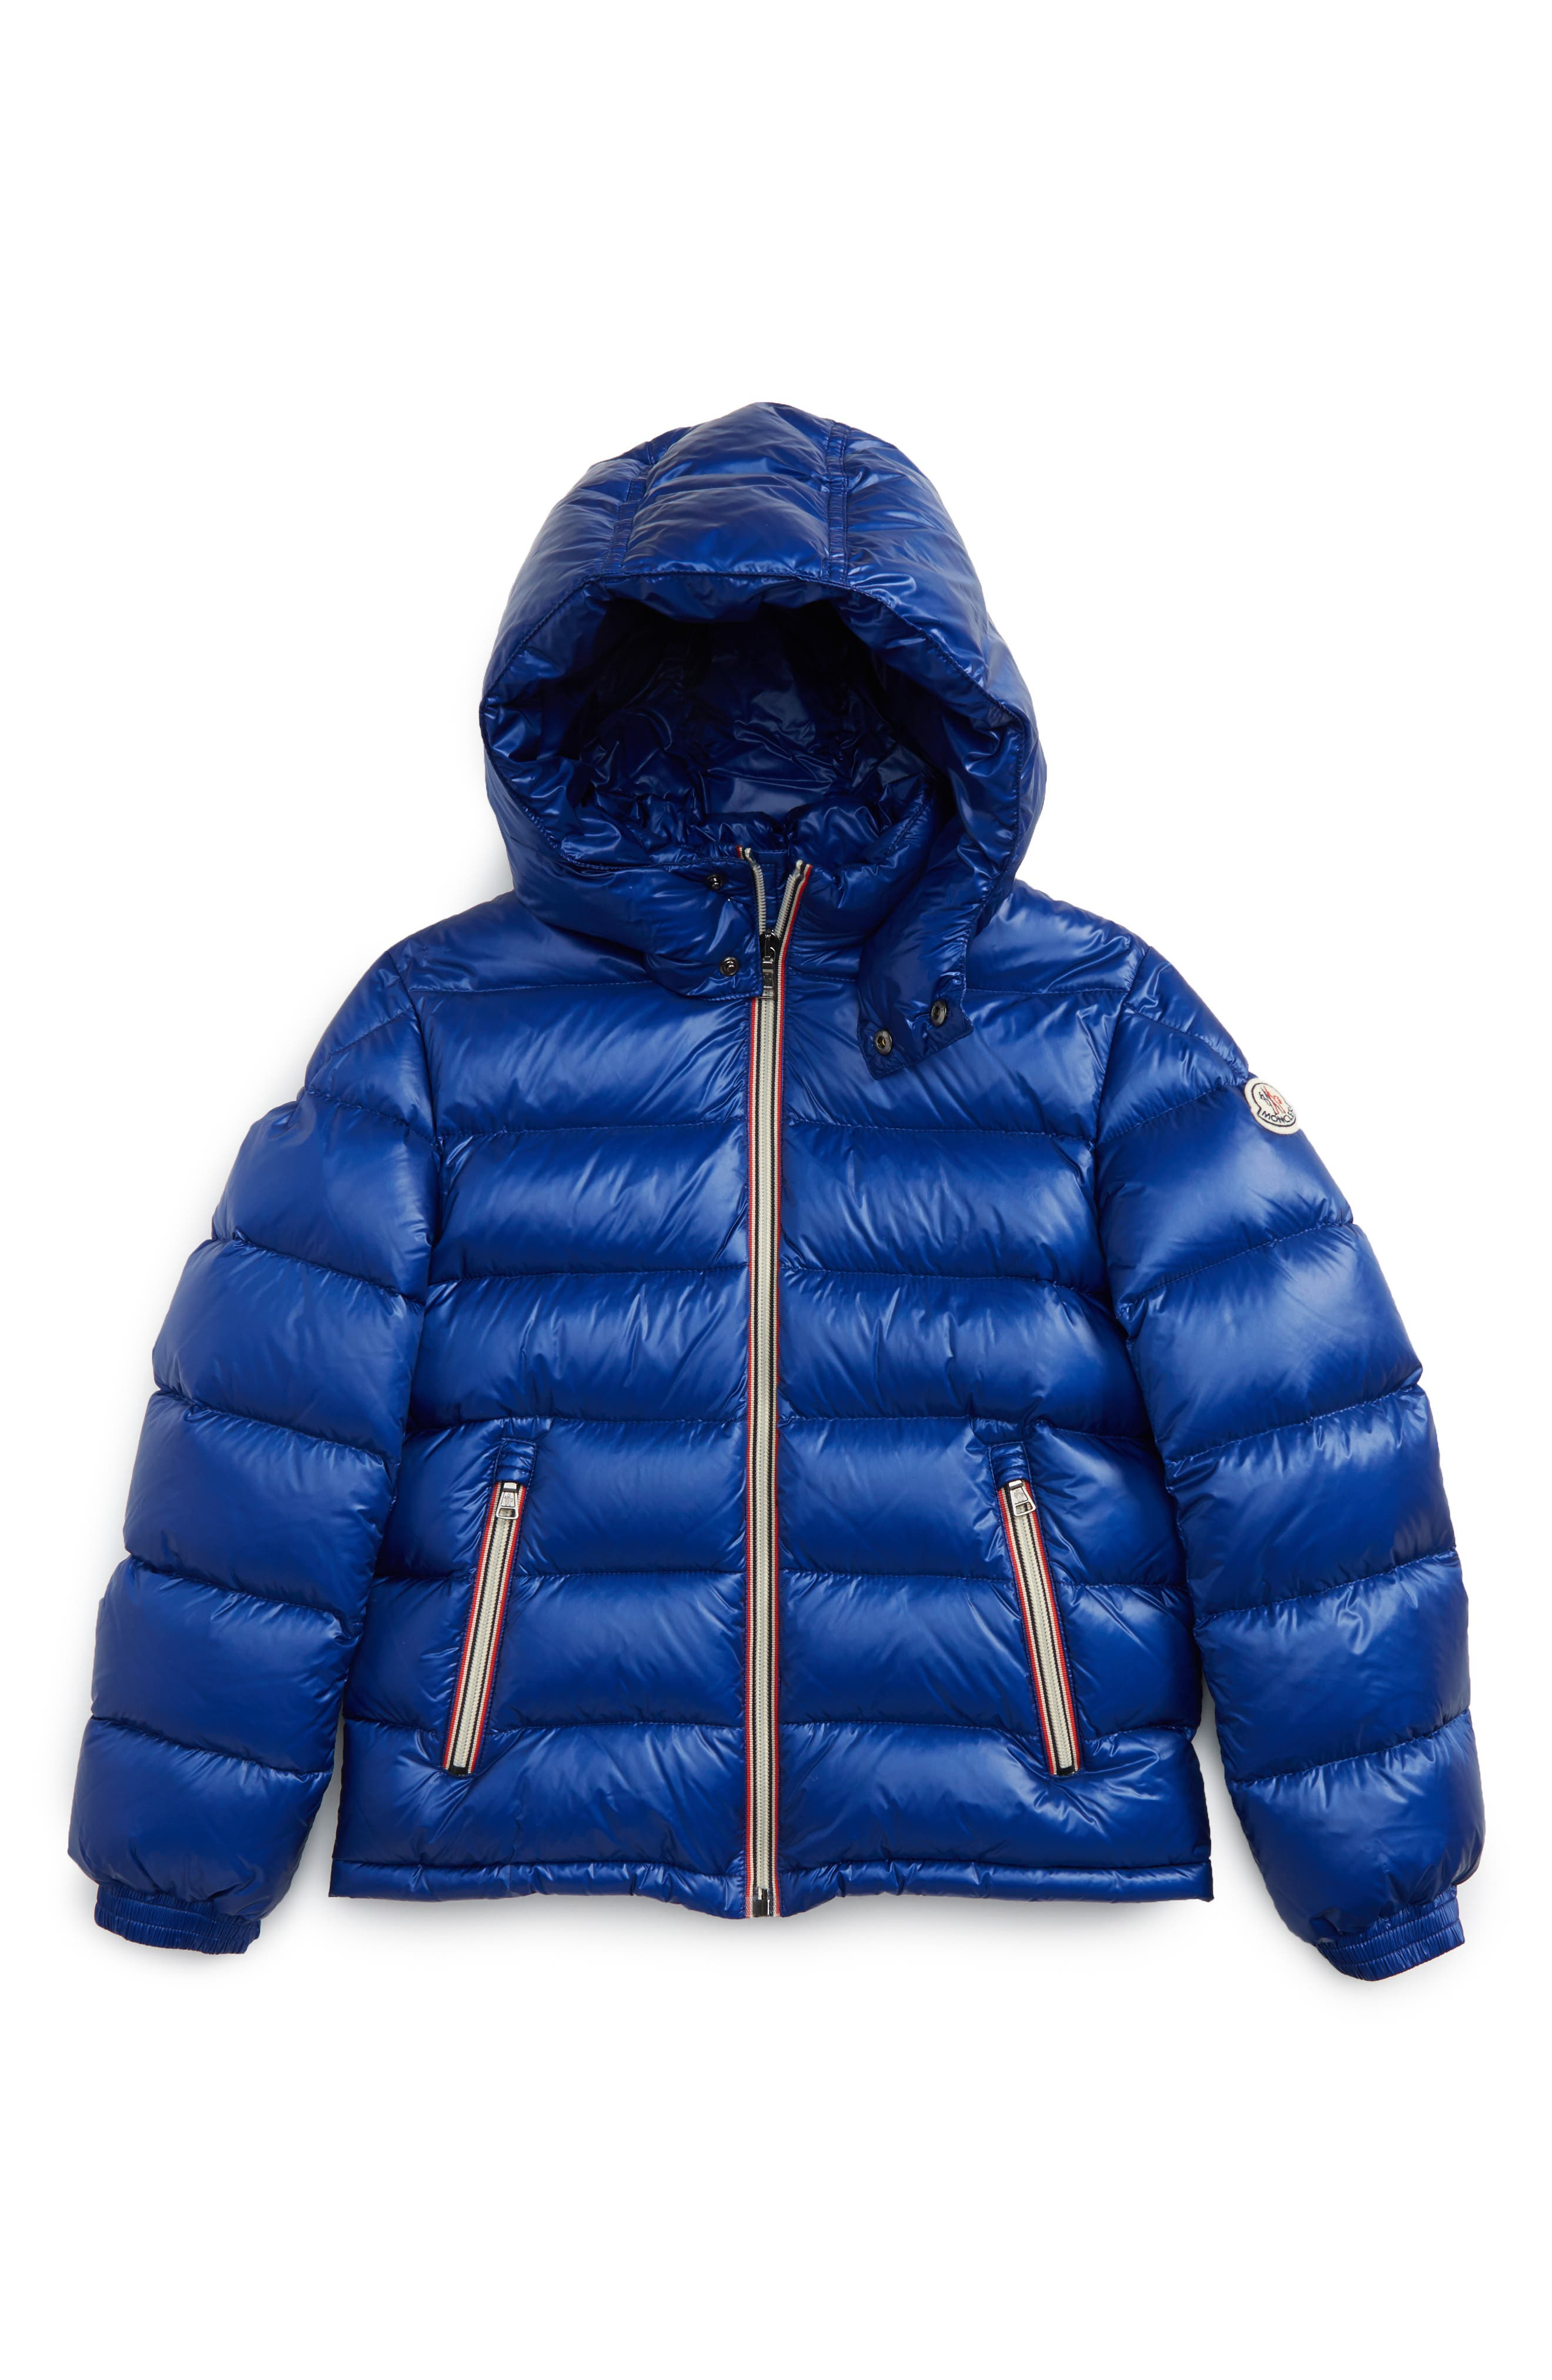 New Gaston Hooded Water Resistant Down Jacket,                         Main,                         color, 400